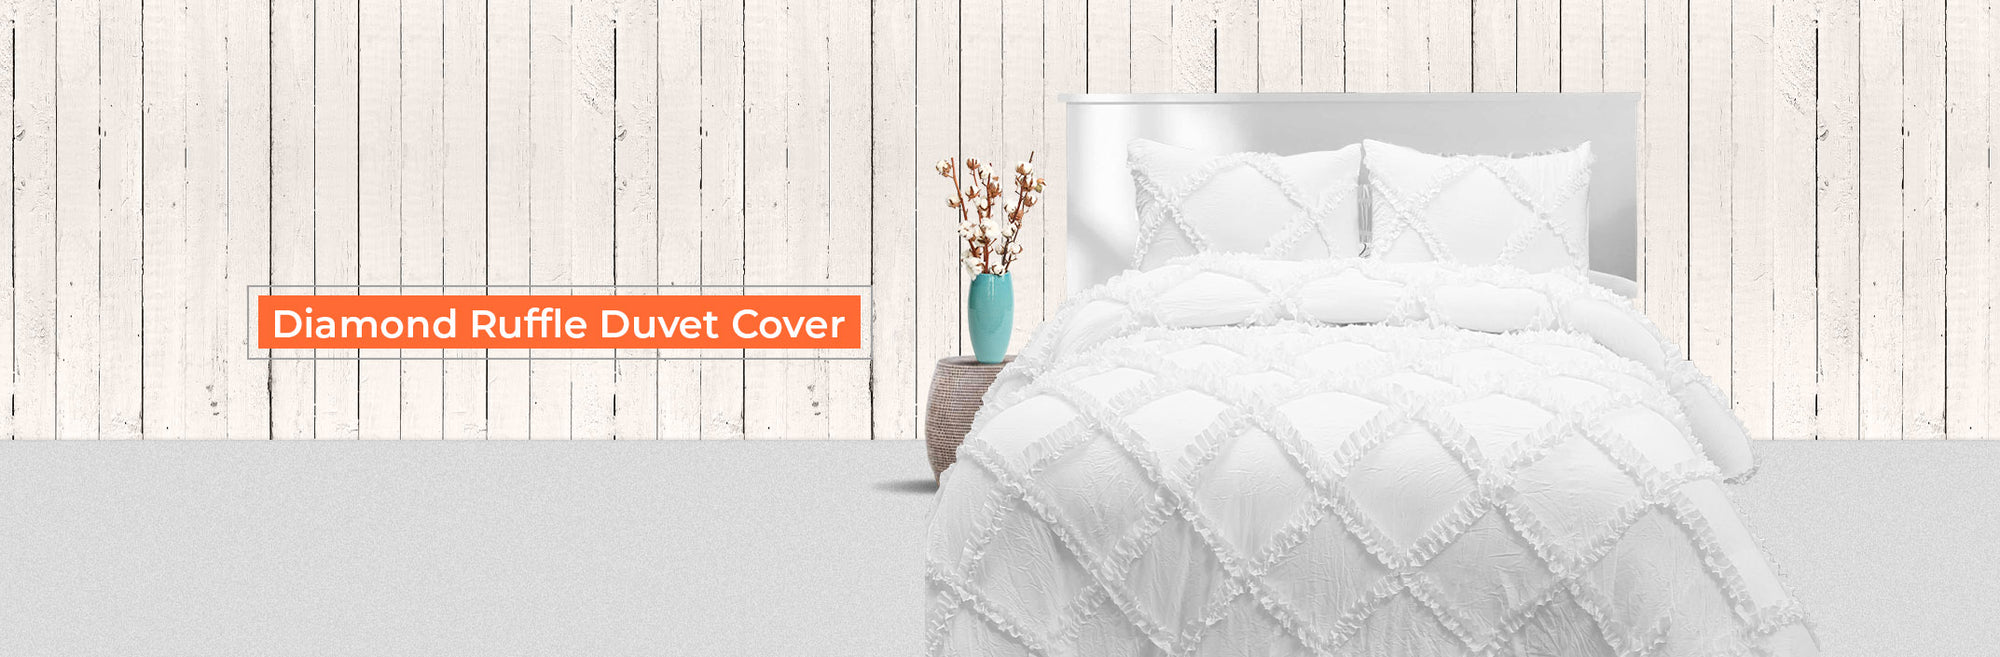 Diamond Ruffled Duvet Cover